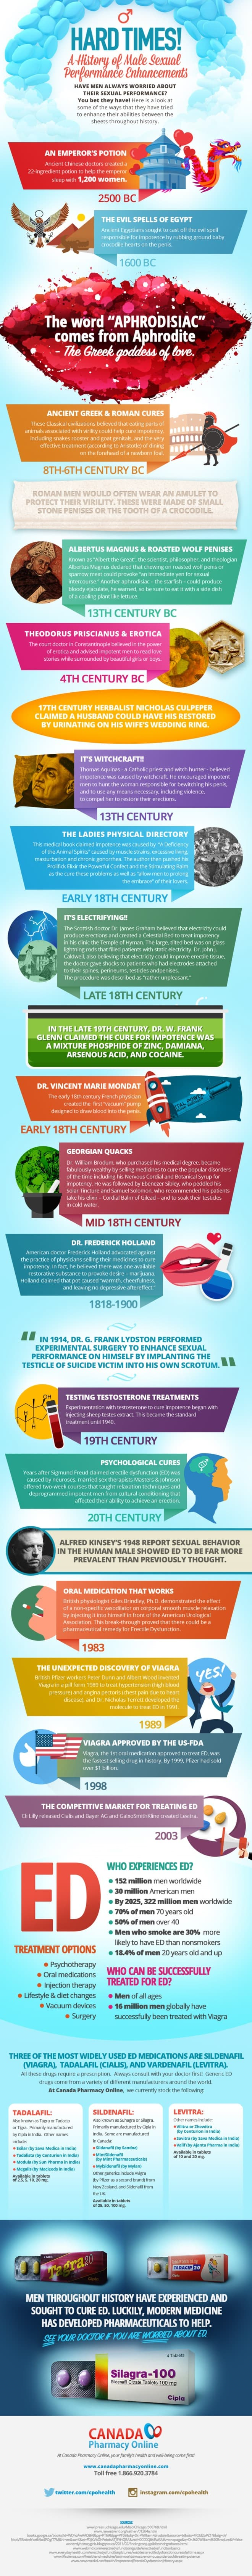 Infographic: Hard Times! A History of Male Sexual Performance Enhancements